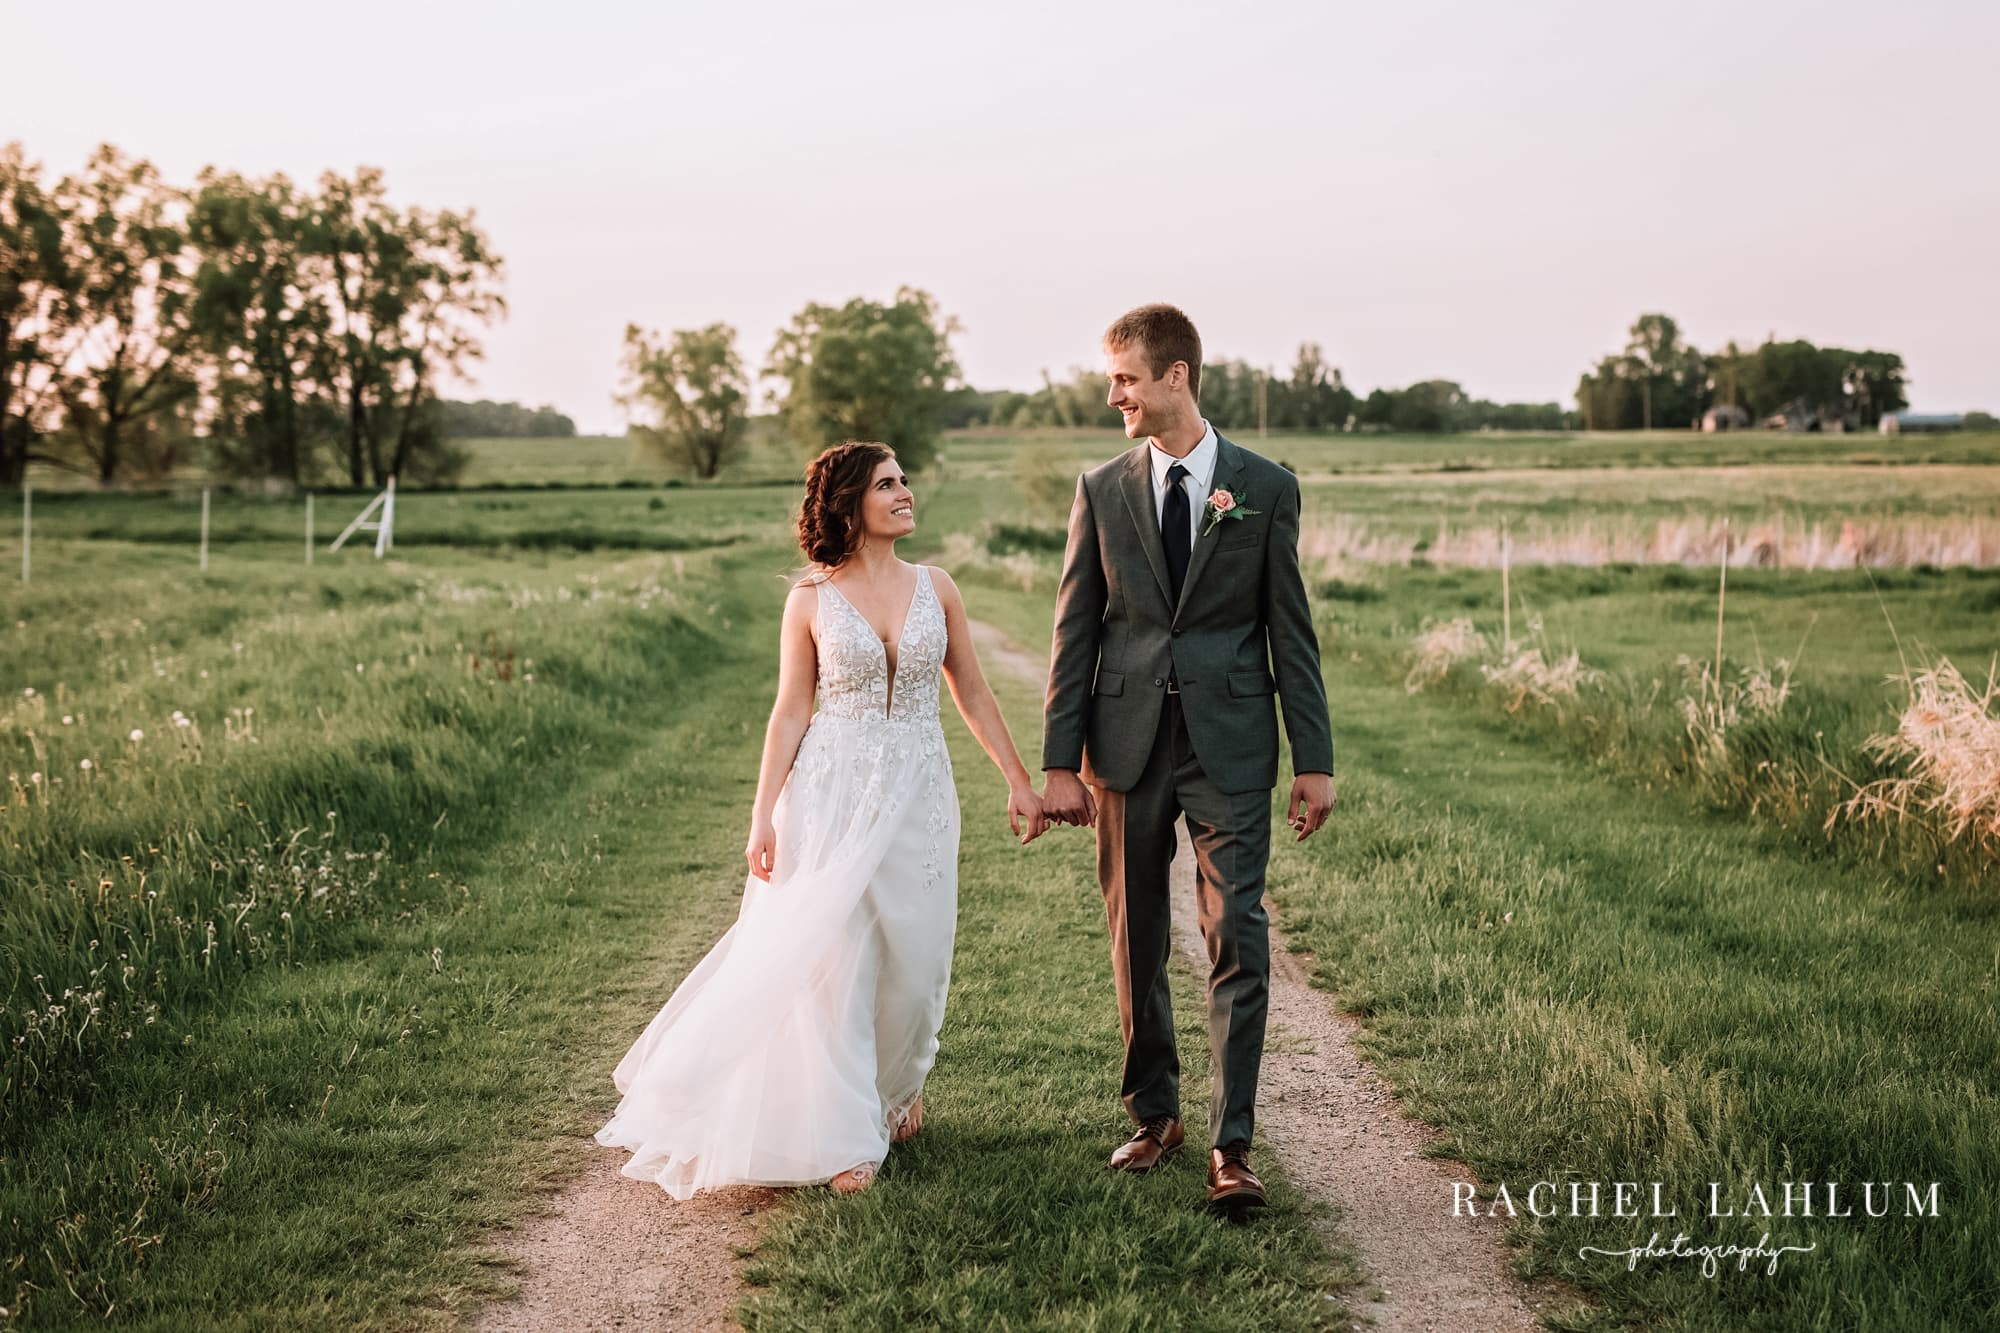 Bride and groom walk down dirt road at The Cottage Farmhouse.